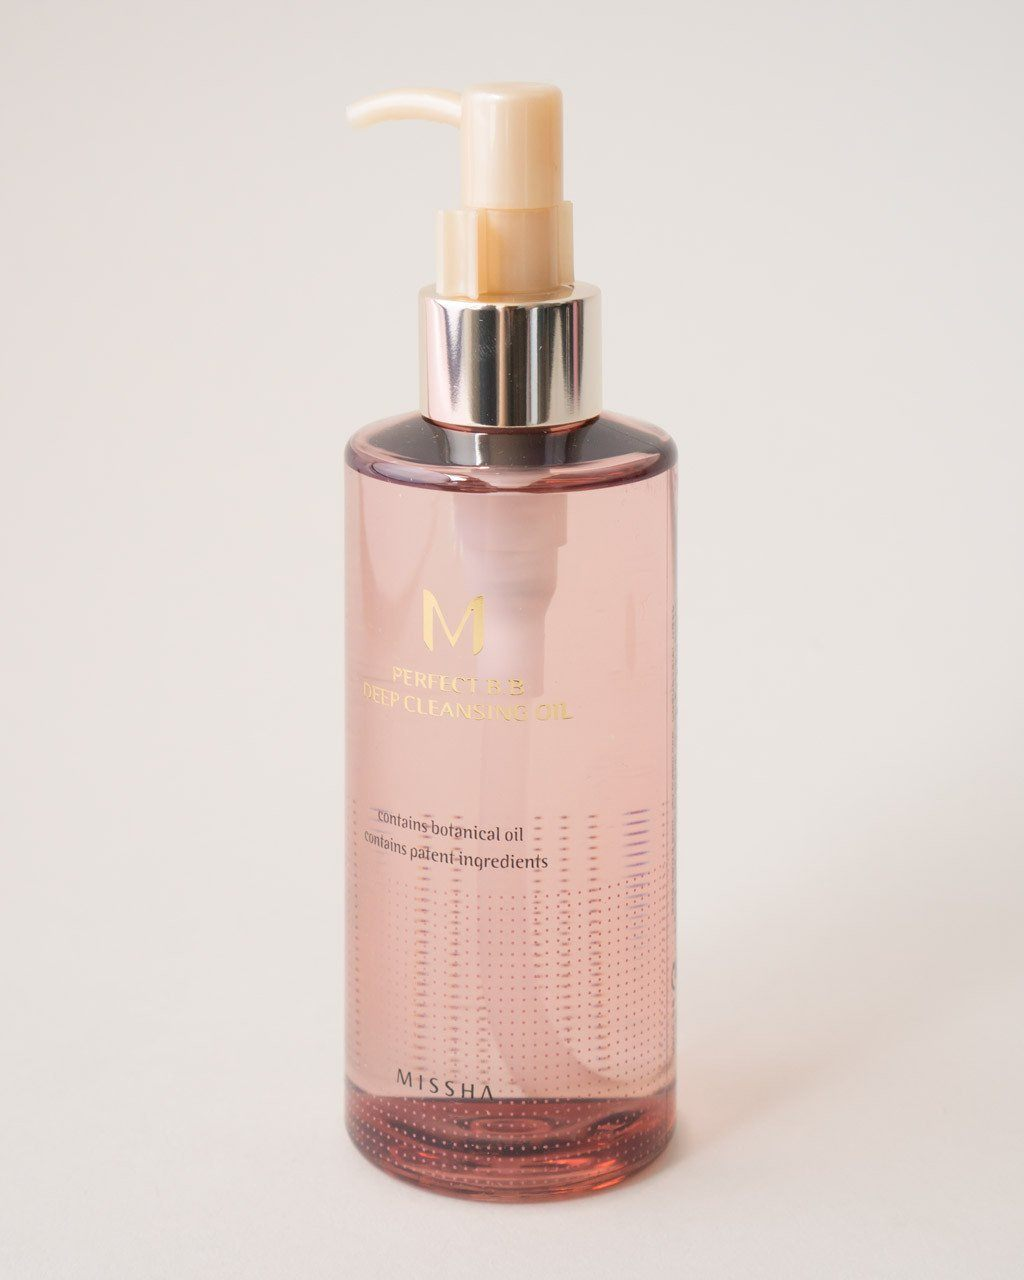 MISSHA M Perfect BB Deep Cleansing Oil, cleanser, skincare, skin care